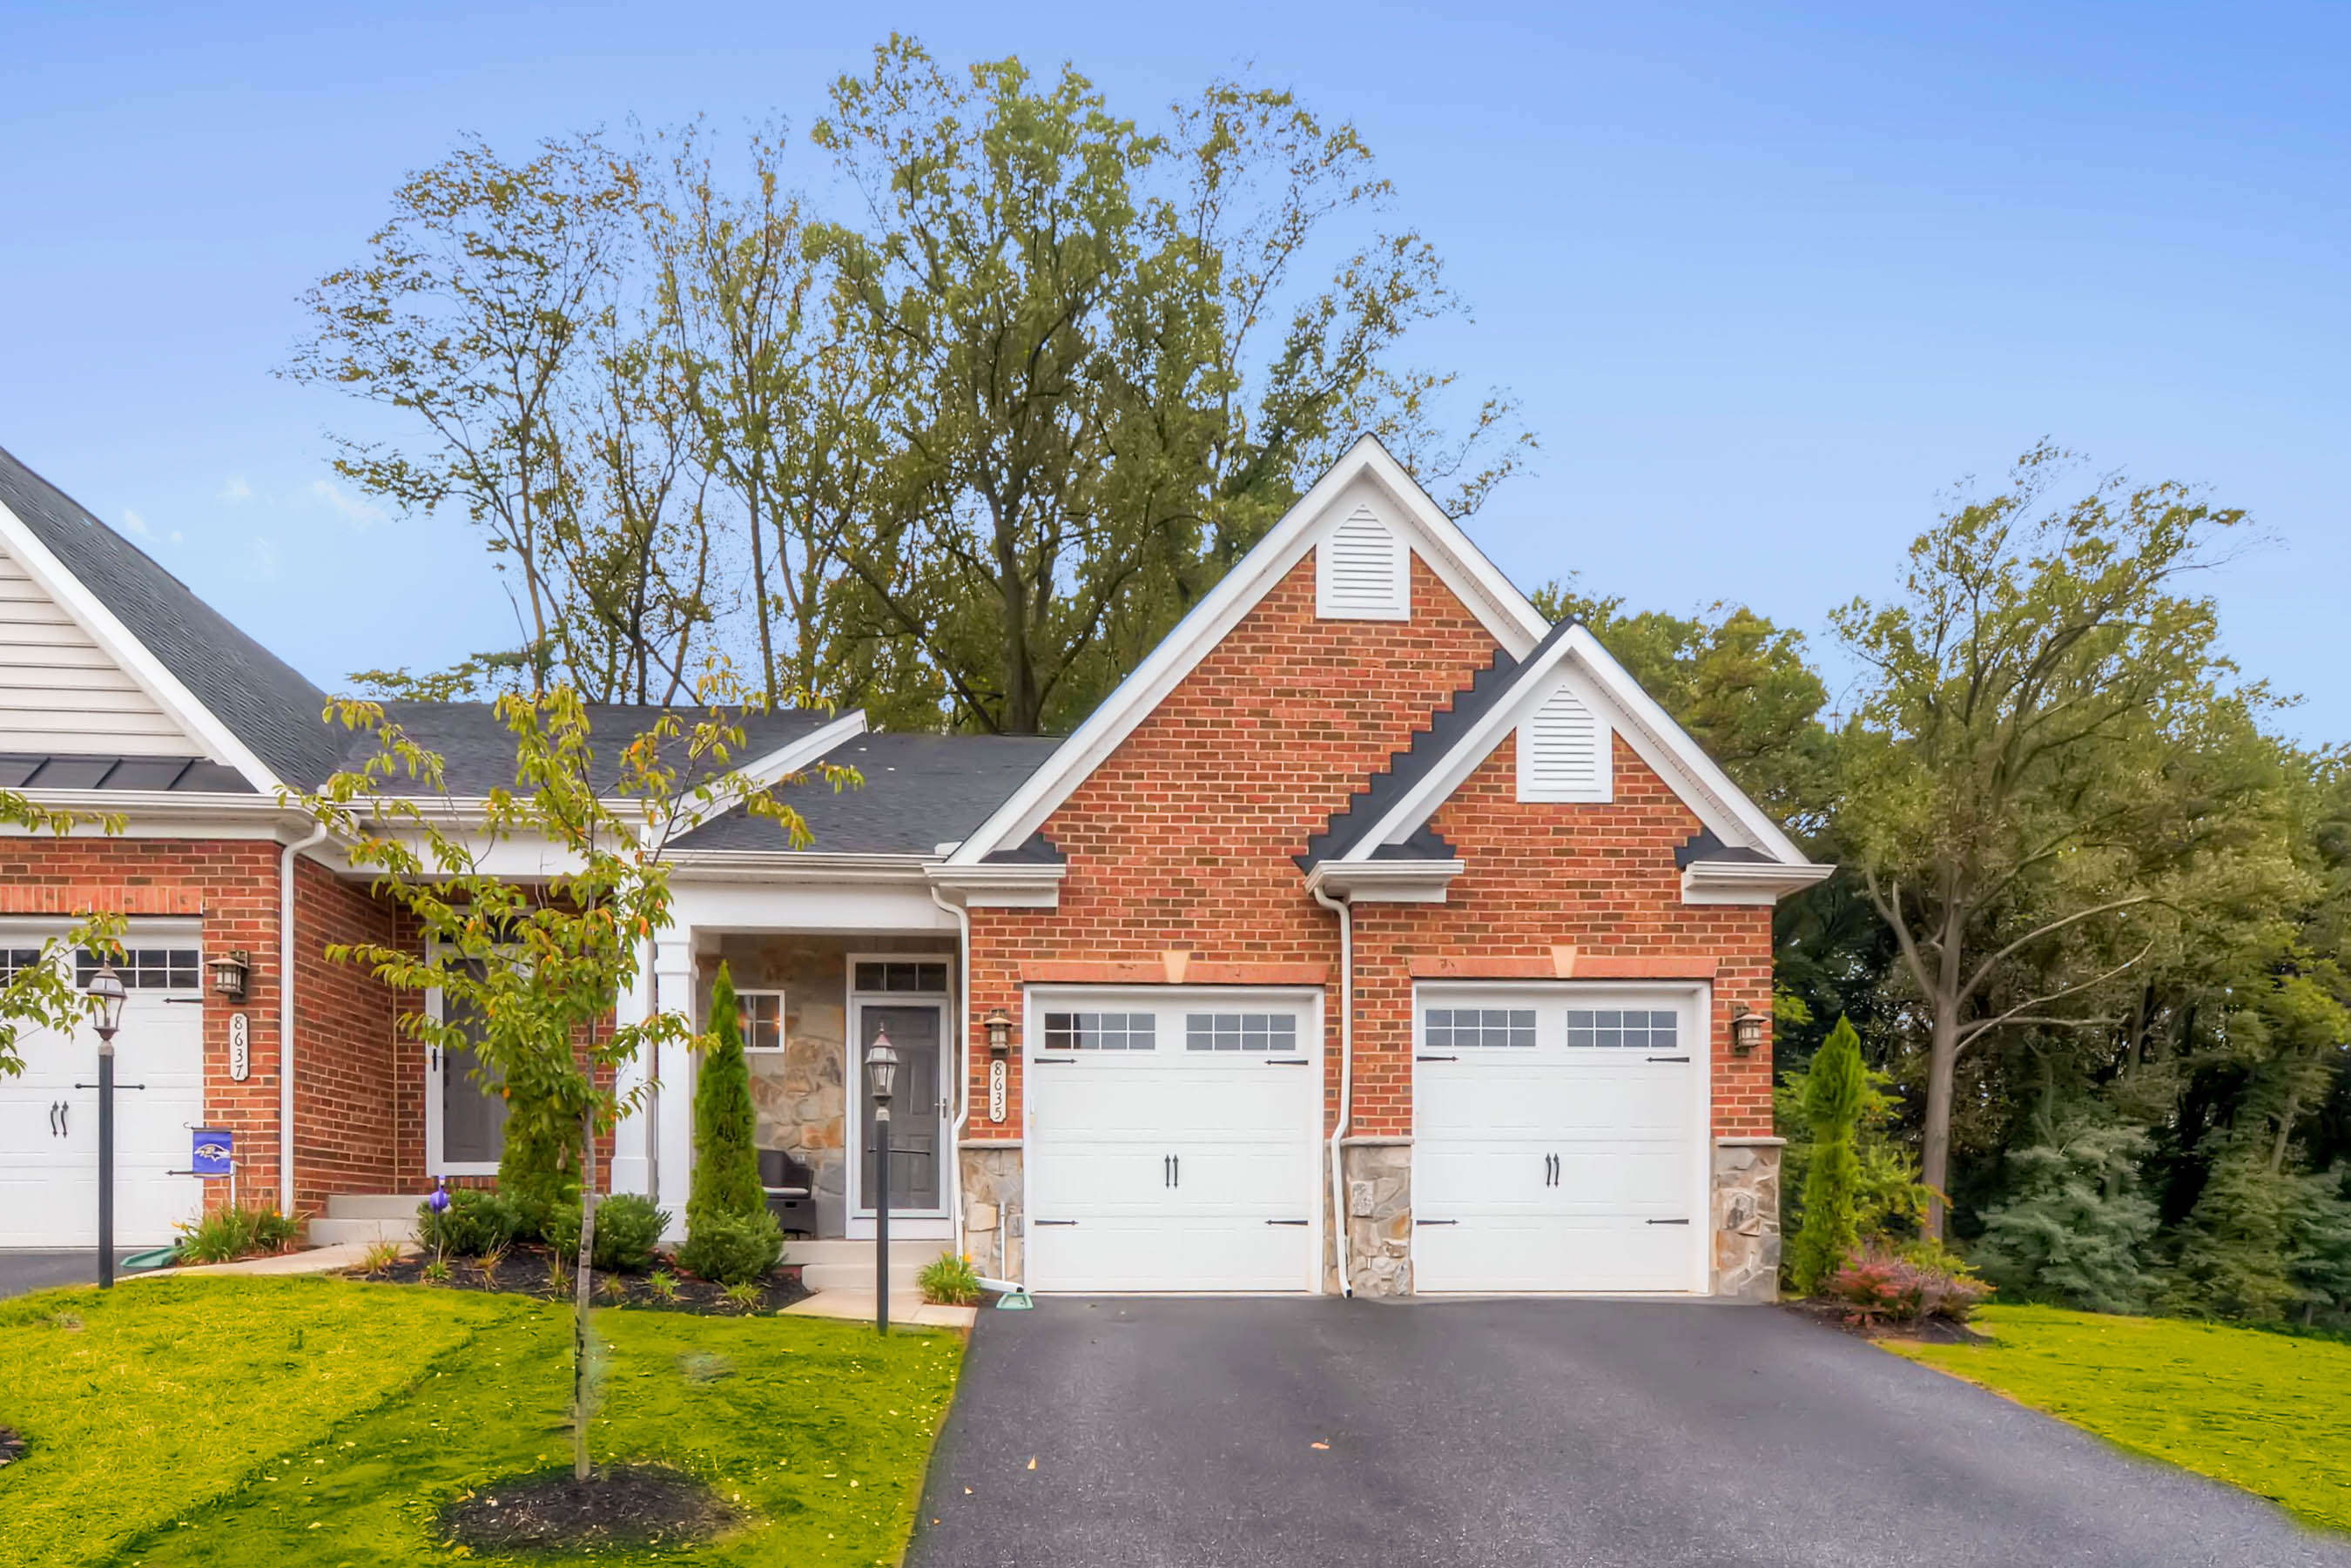 Townhouse for Sale at 8635 Westford Road Lutherville Timonium, Maryland, 21093 United States